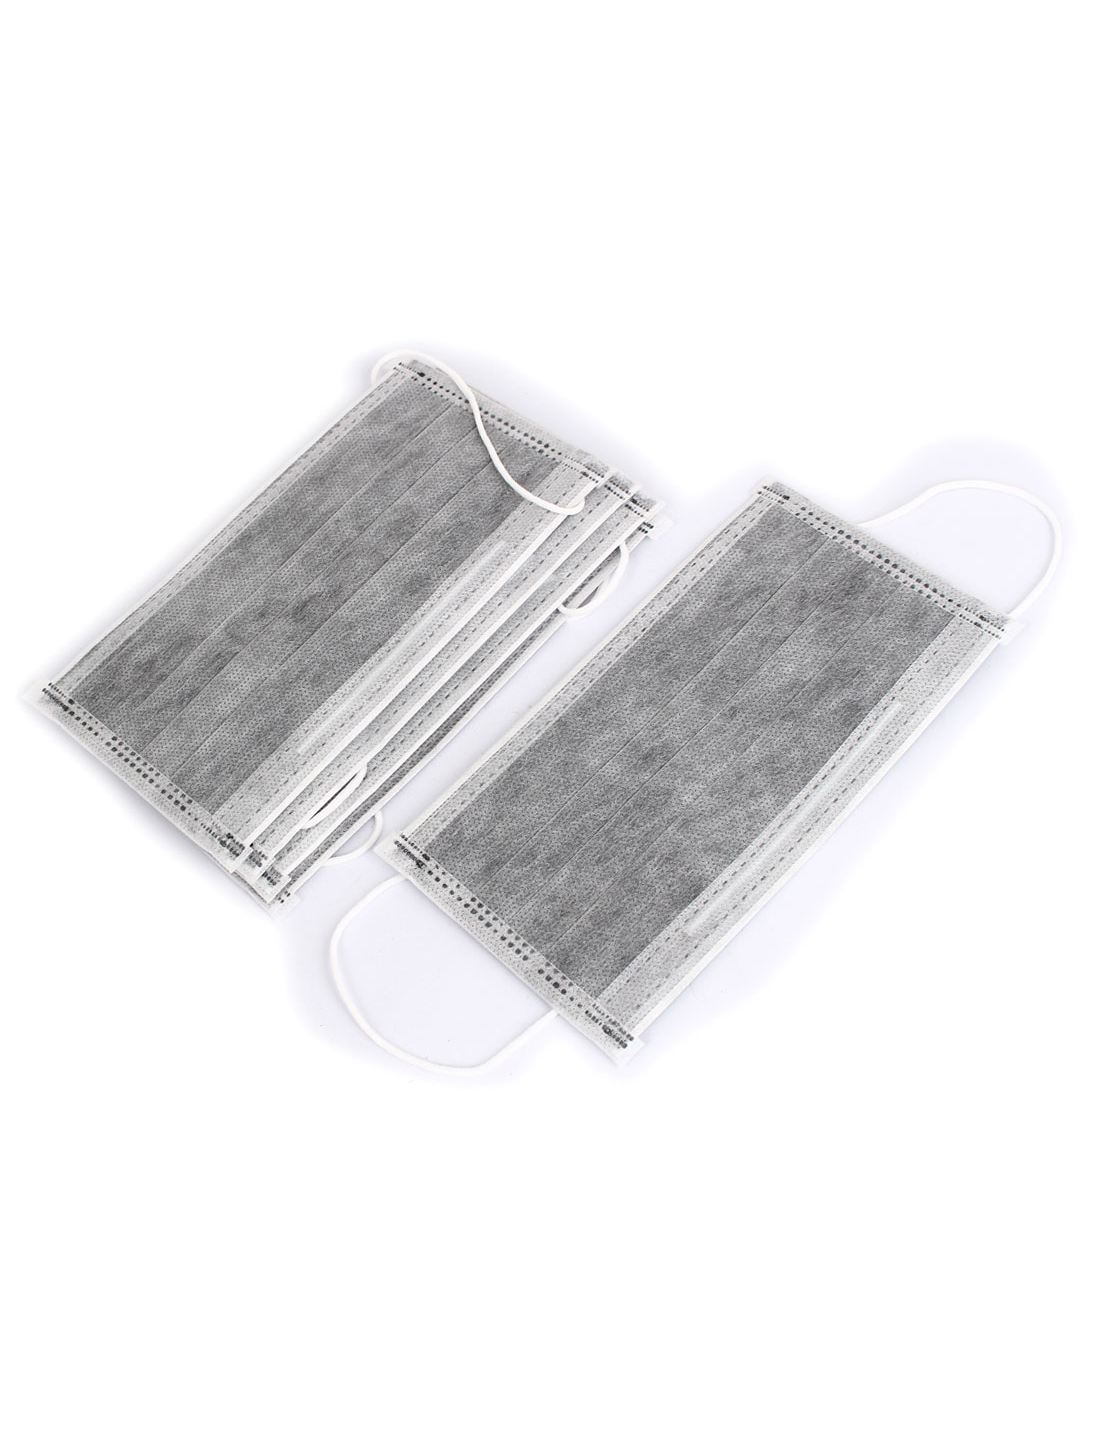 Unisex Earloop Anti-Dust Disposable Mouth Nose Muffle Face Mask Gray 5Pcs